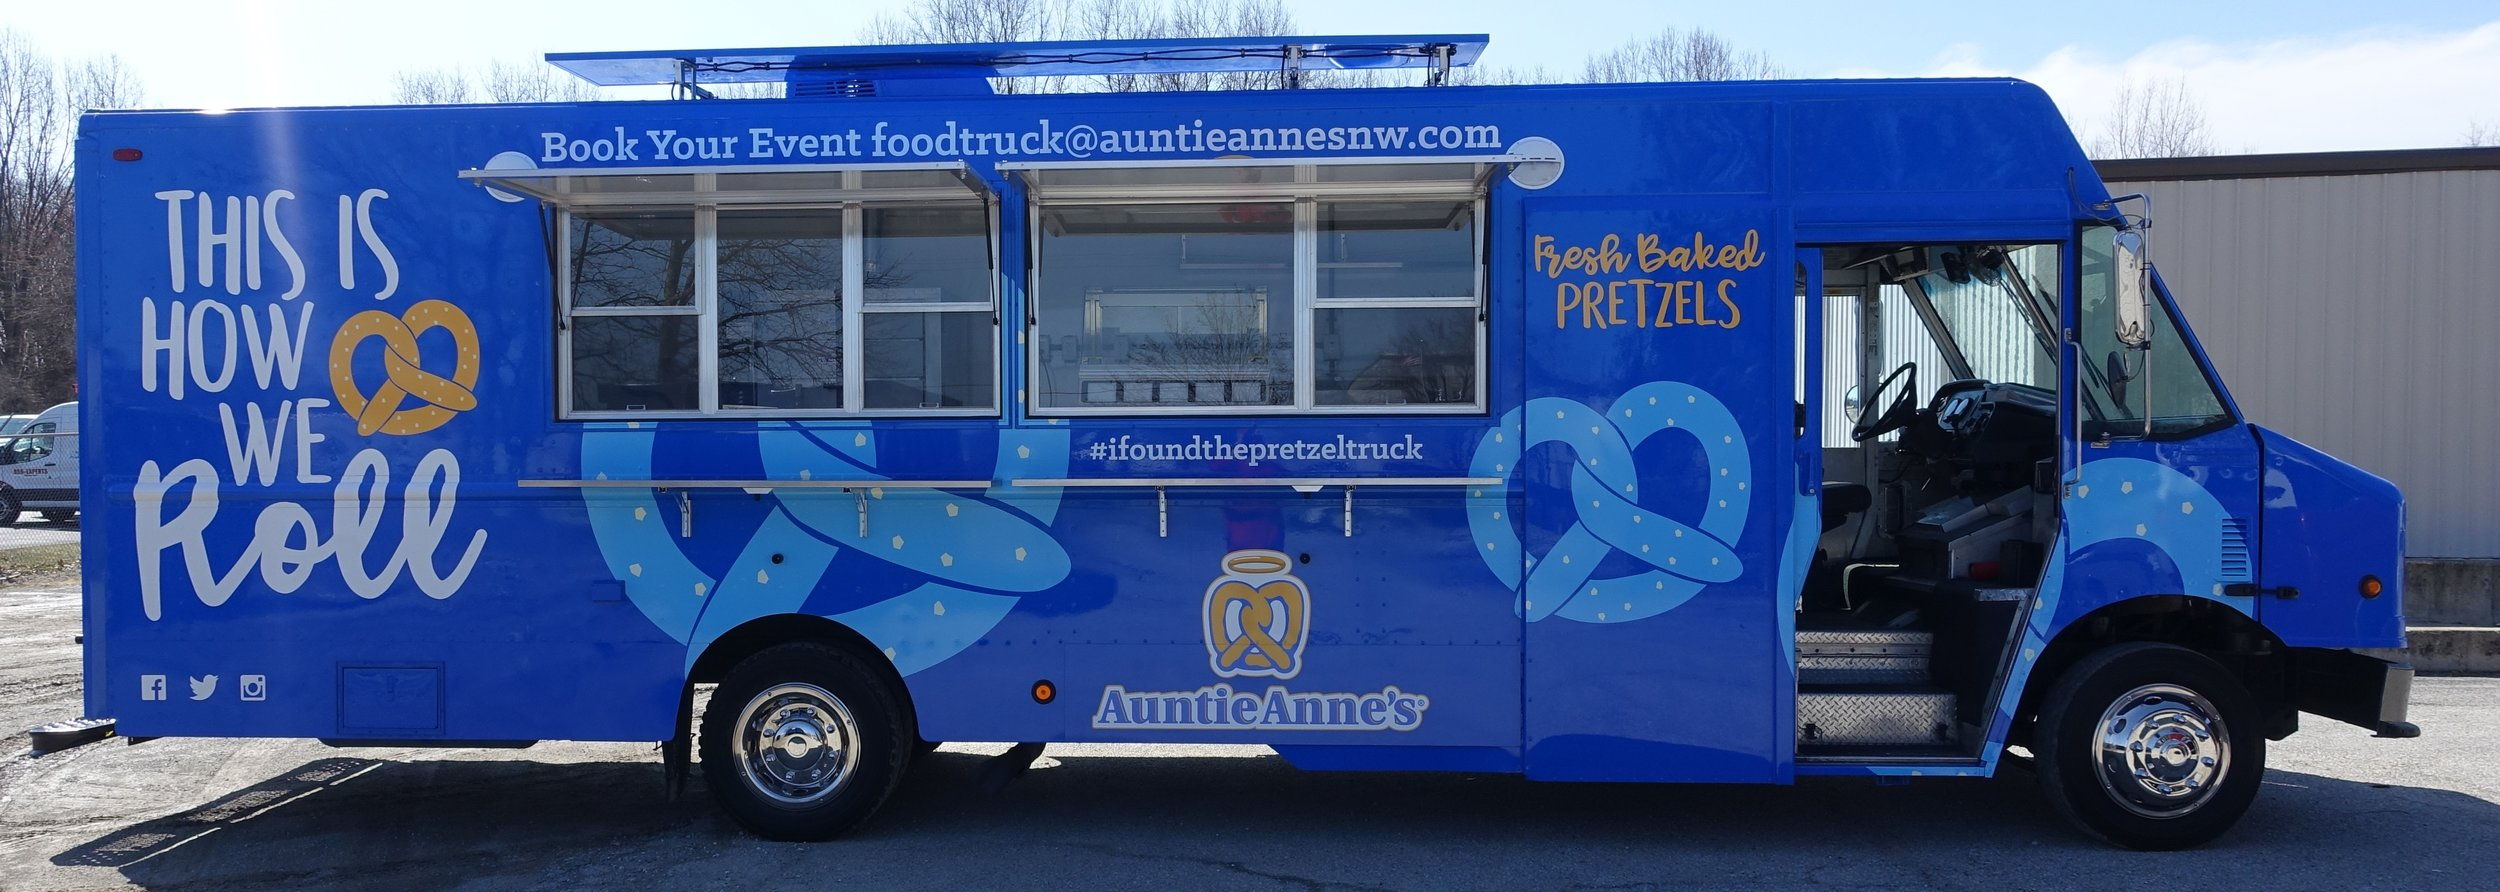 Auntie Anne's Pretzels - Pretzels, Dips, Pretzel Dogs, LemonadeFind on FacebookTwitter: @anne_spoWebsite: http://www.auntieannes.comPhone: 425-774-3338Email: slesh@wvs.orgAvailable for cateringAlso serves in: Everett, Marysville &Snohomish